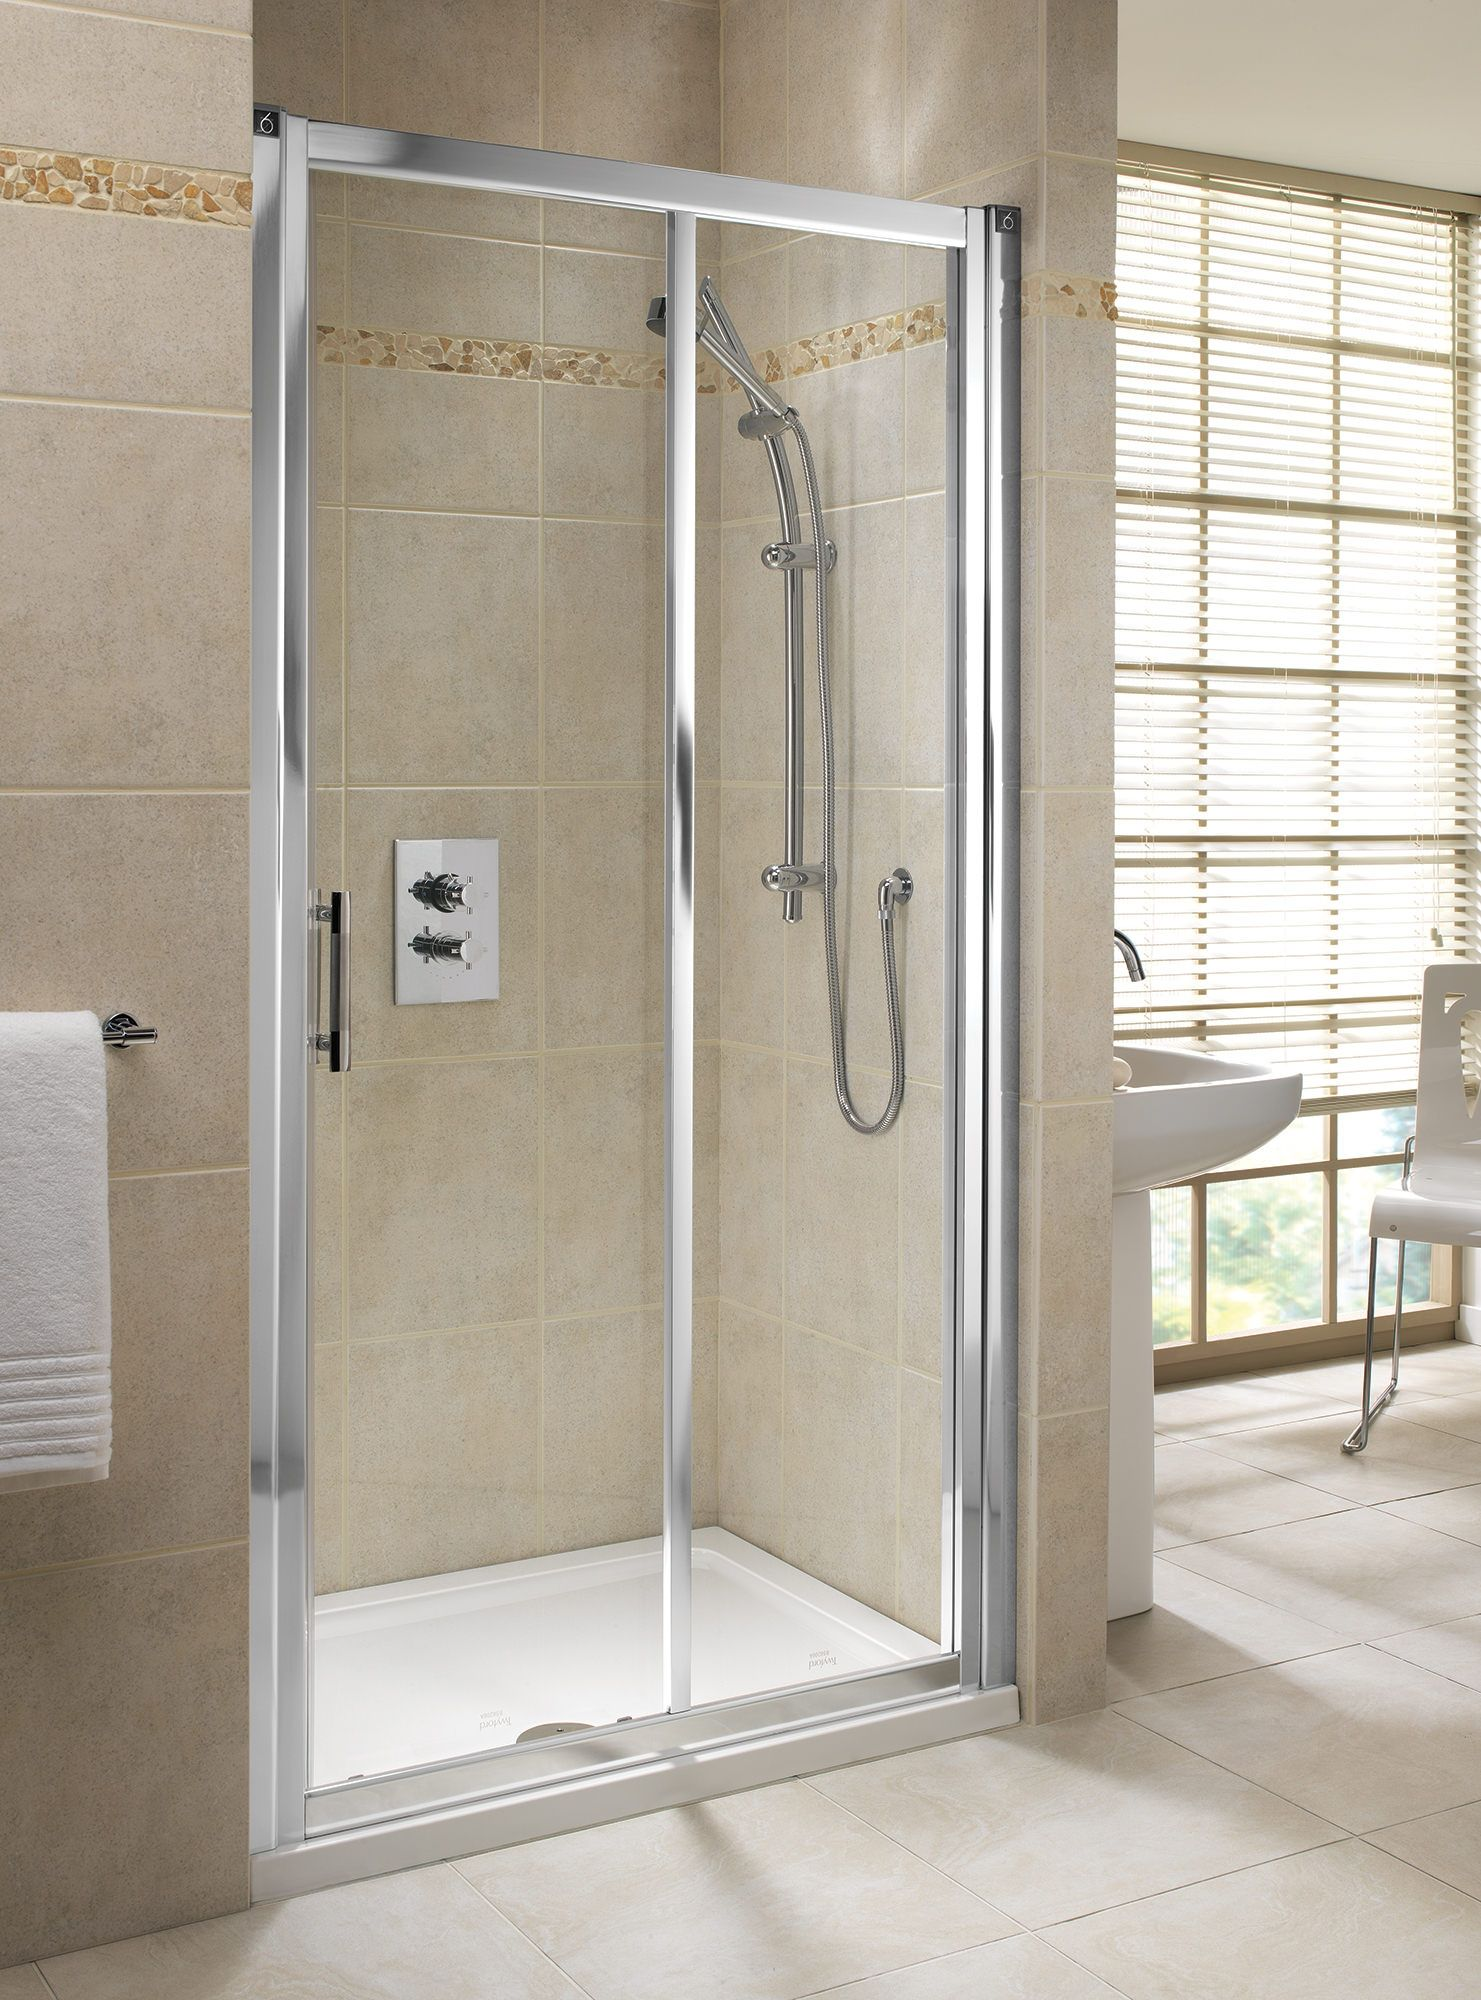 Shower Stalls With Sliding Doors Shower Doors Sliding Shower Door Shower Stall